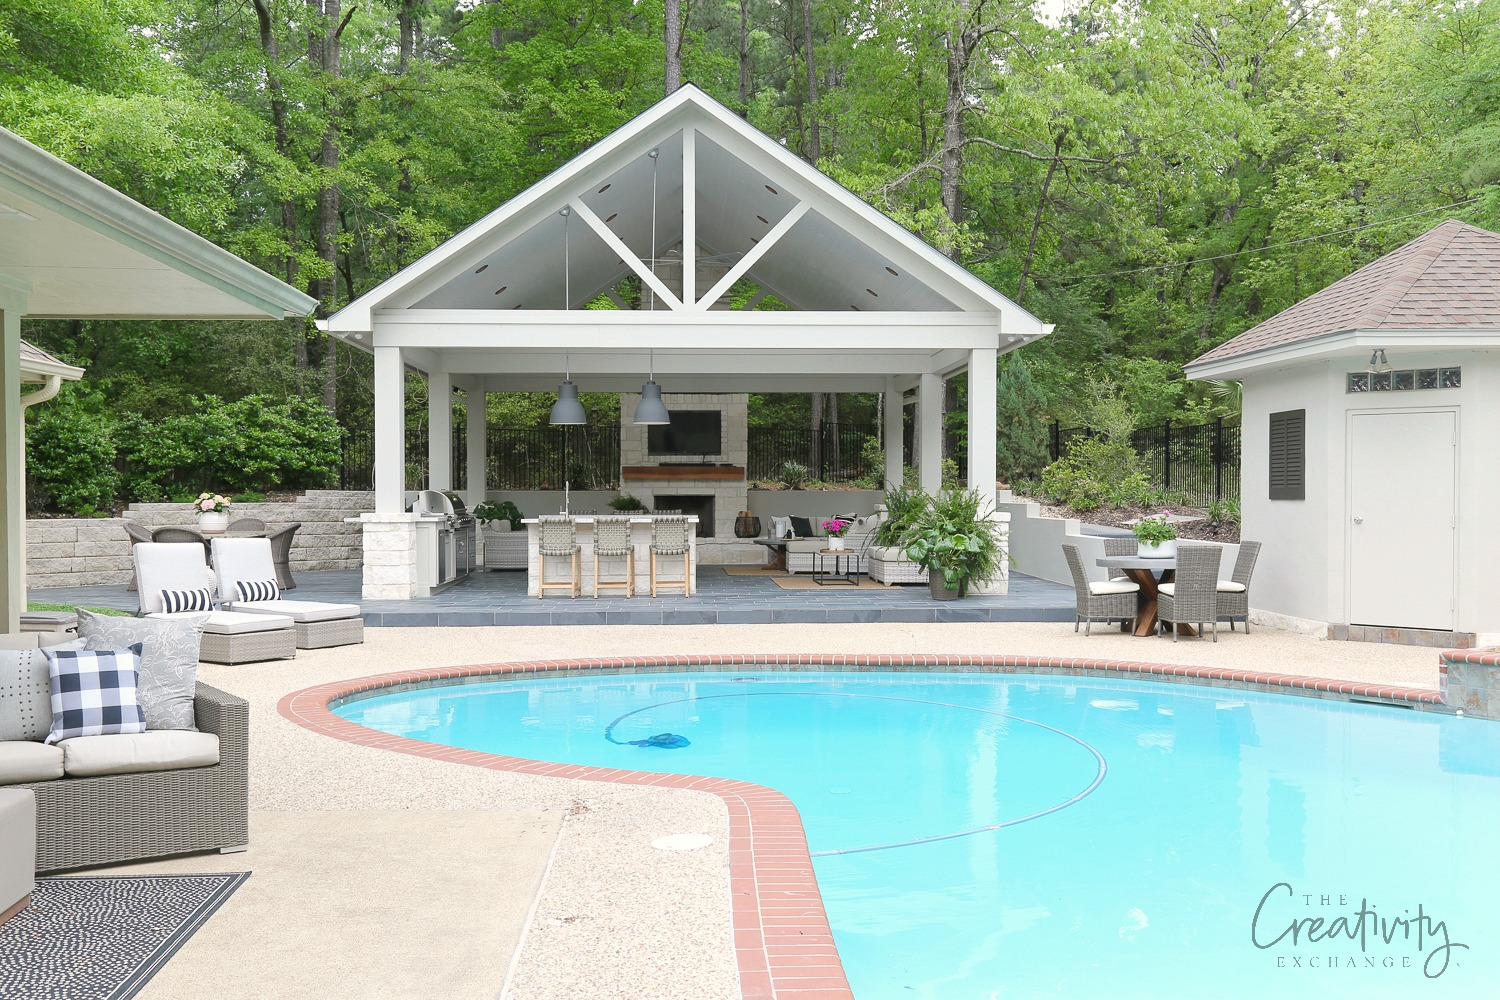 Be Inspired by This Dream Backyard Designed by Cyndy 1.jpg